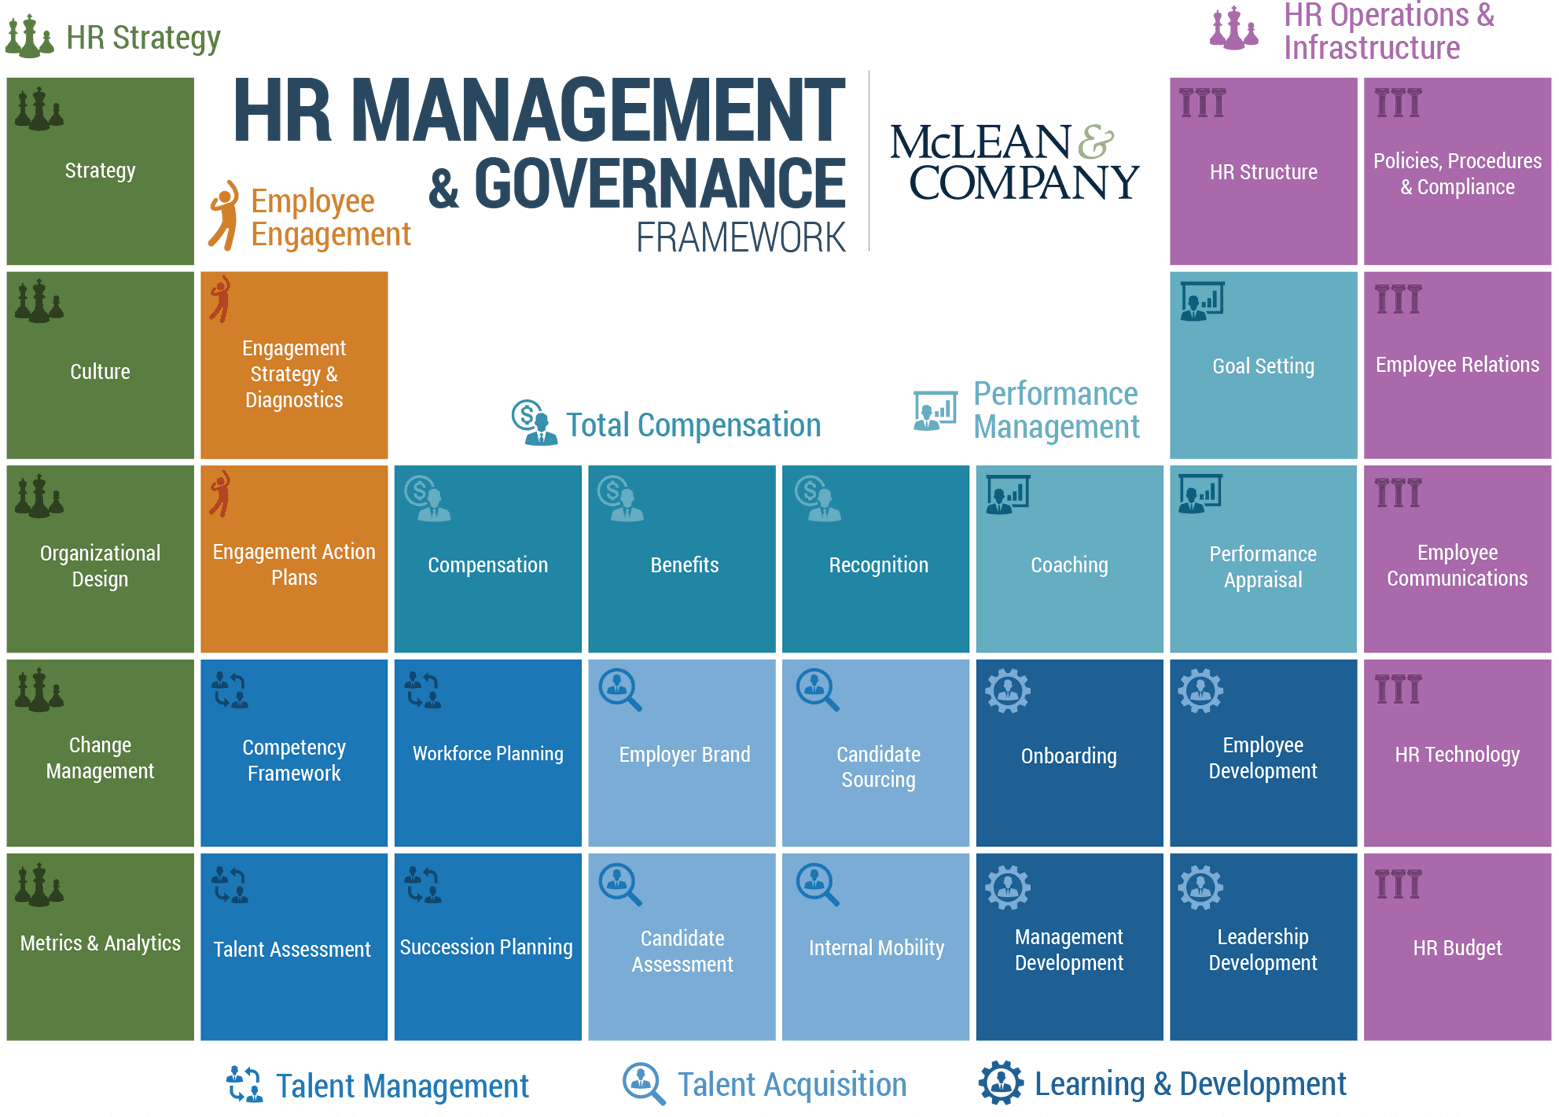 HR Management and Governance Framework